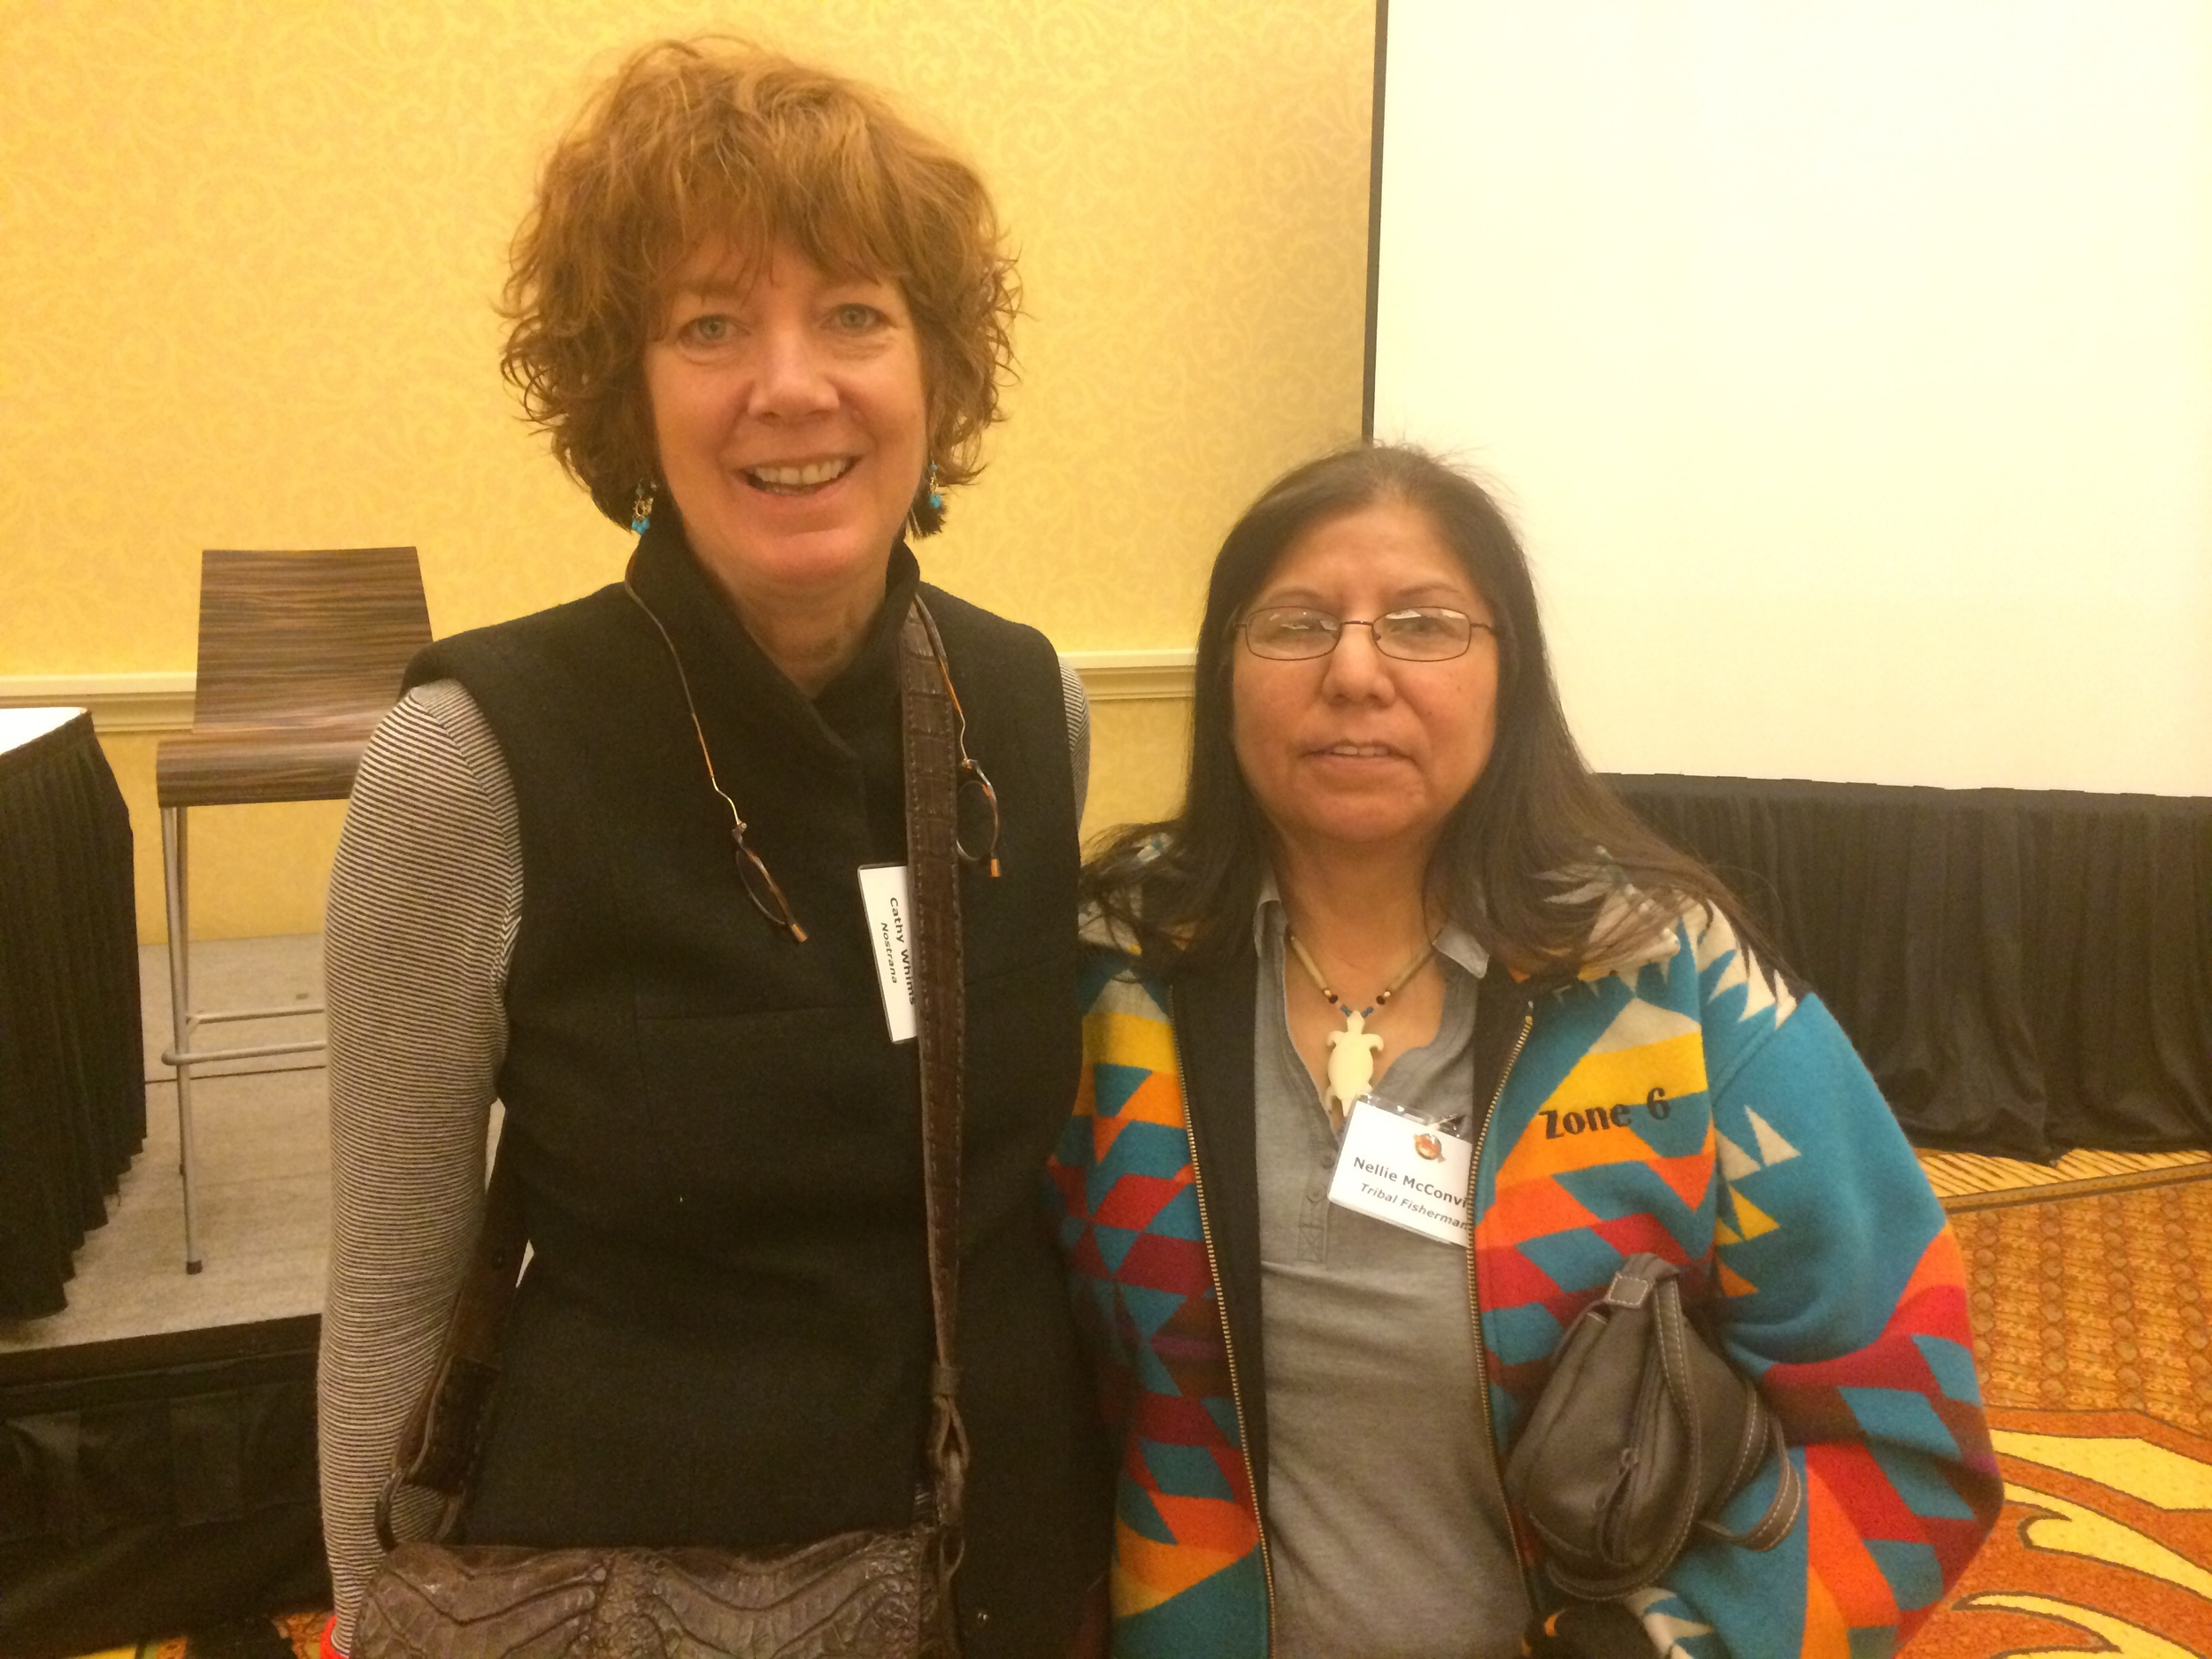 Cathy Whims of Nostrana and Shaker and Oven with Nellie M. of Tribal Fisheries